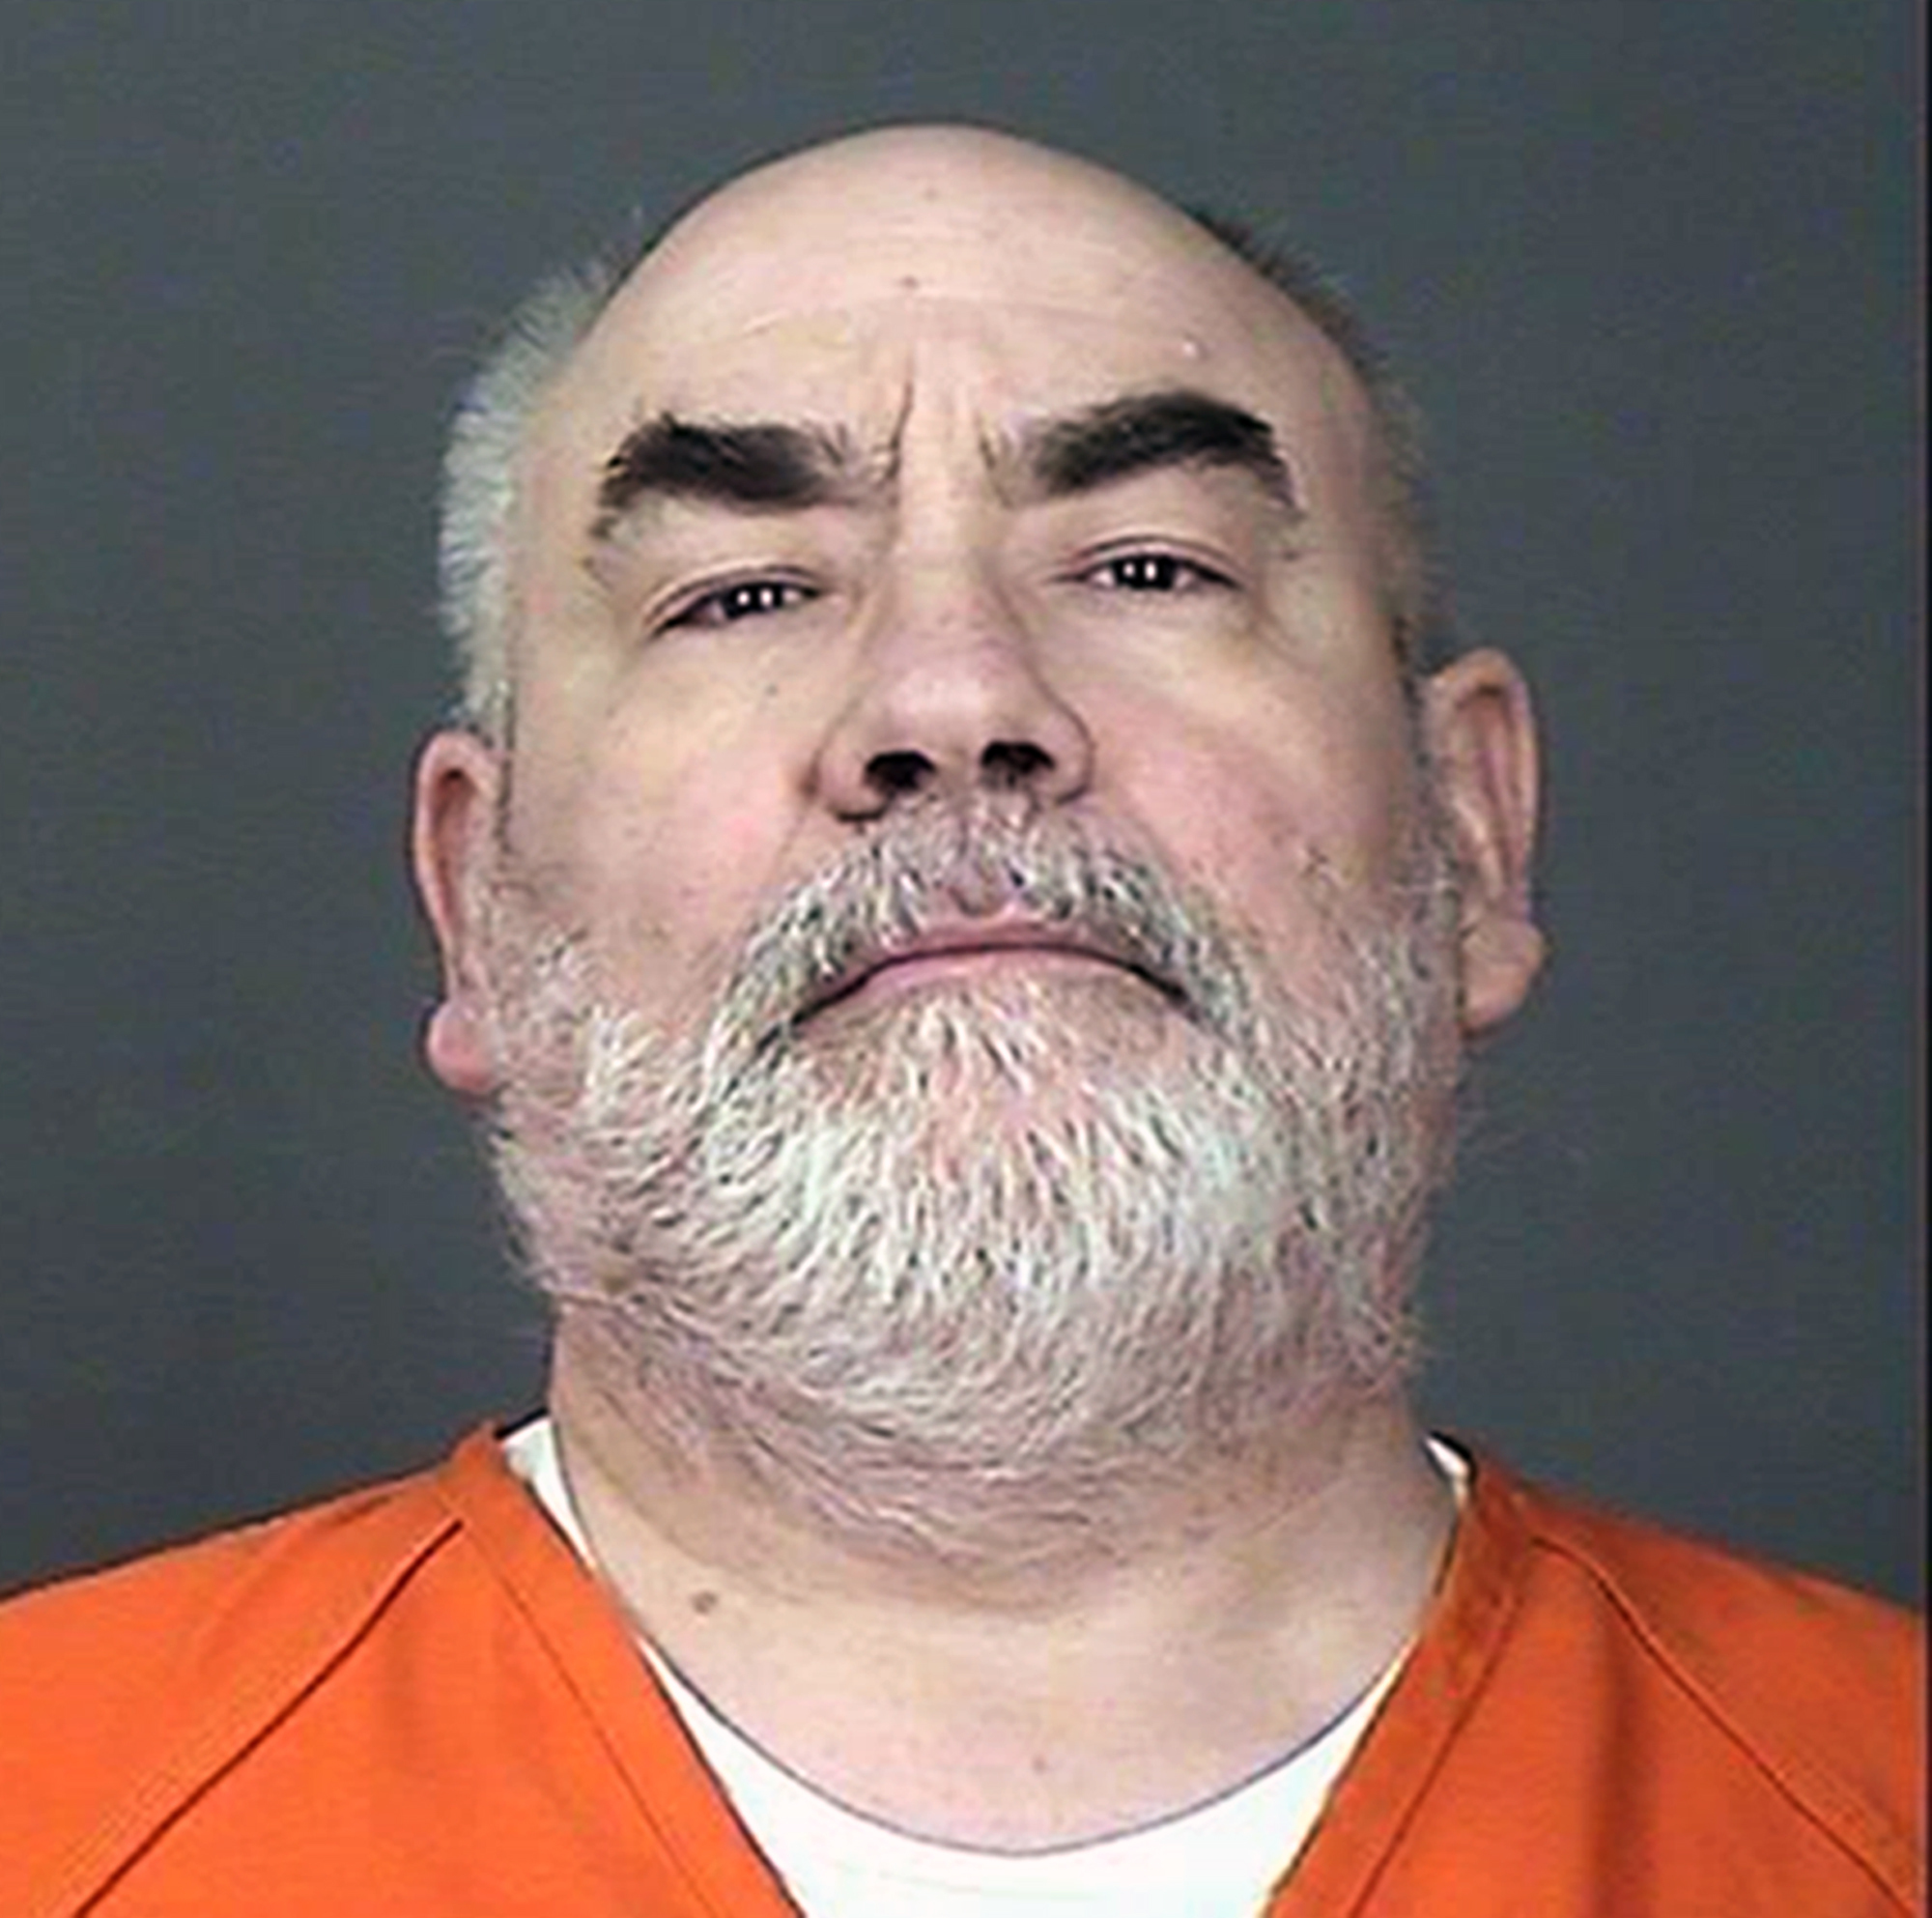 Man Admits Abducting And Killing Jacob Wetterling In 1989